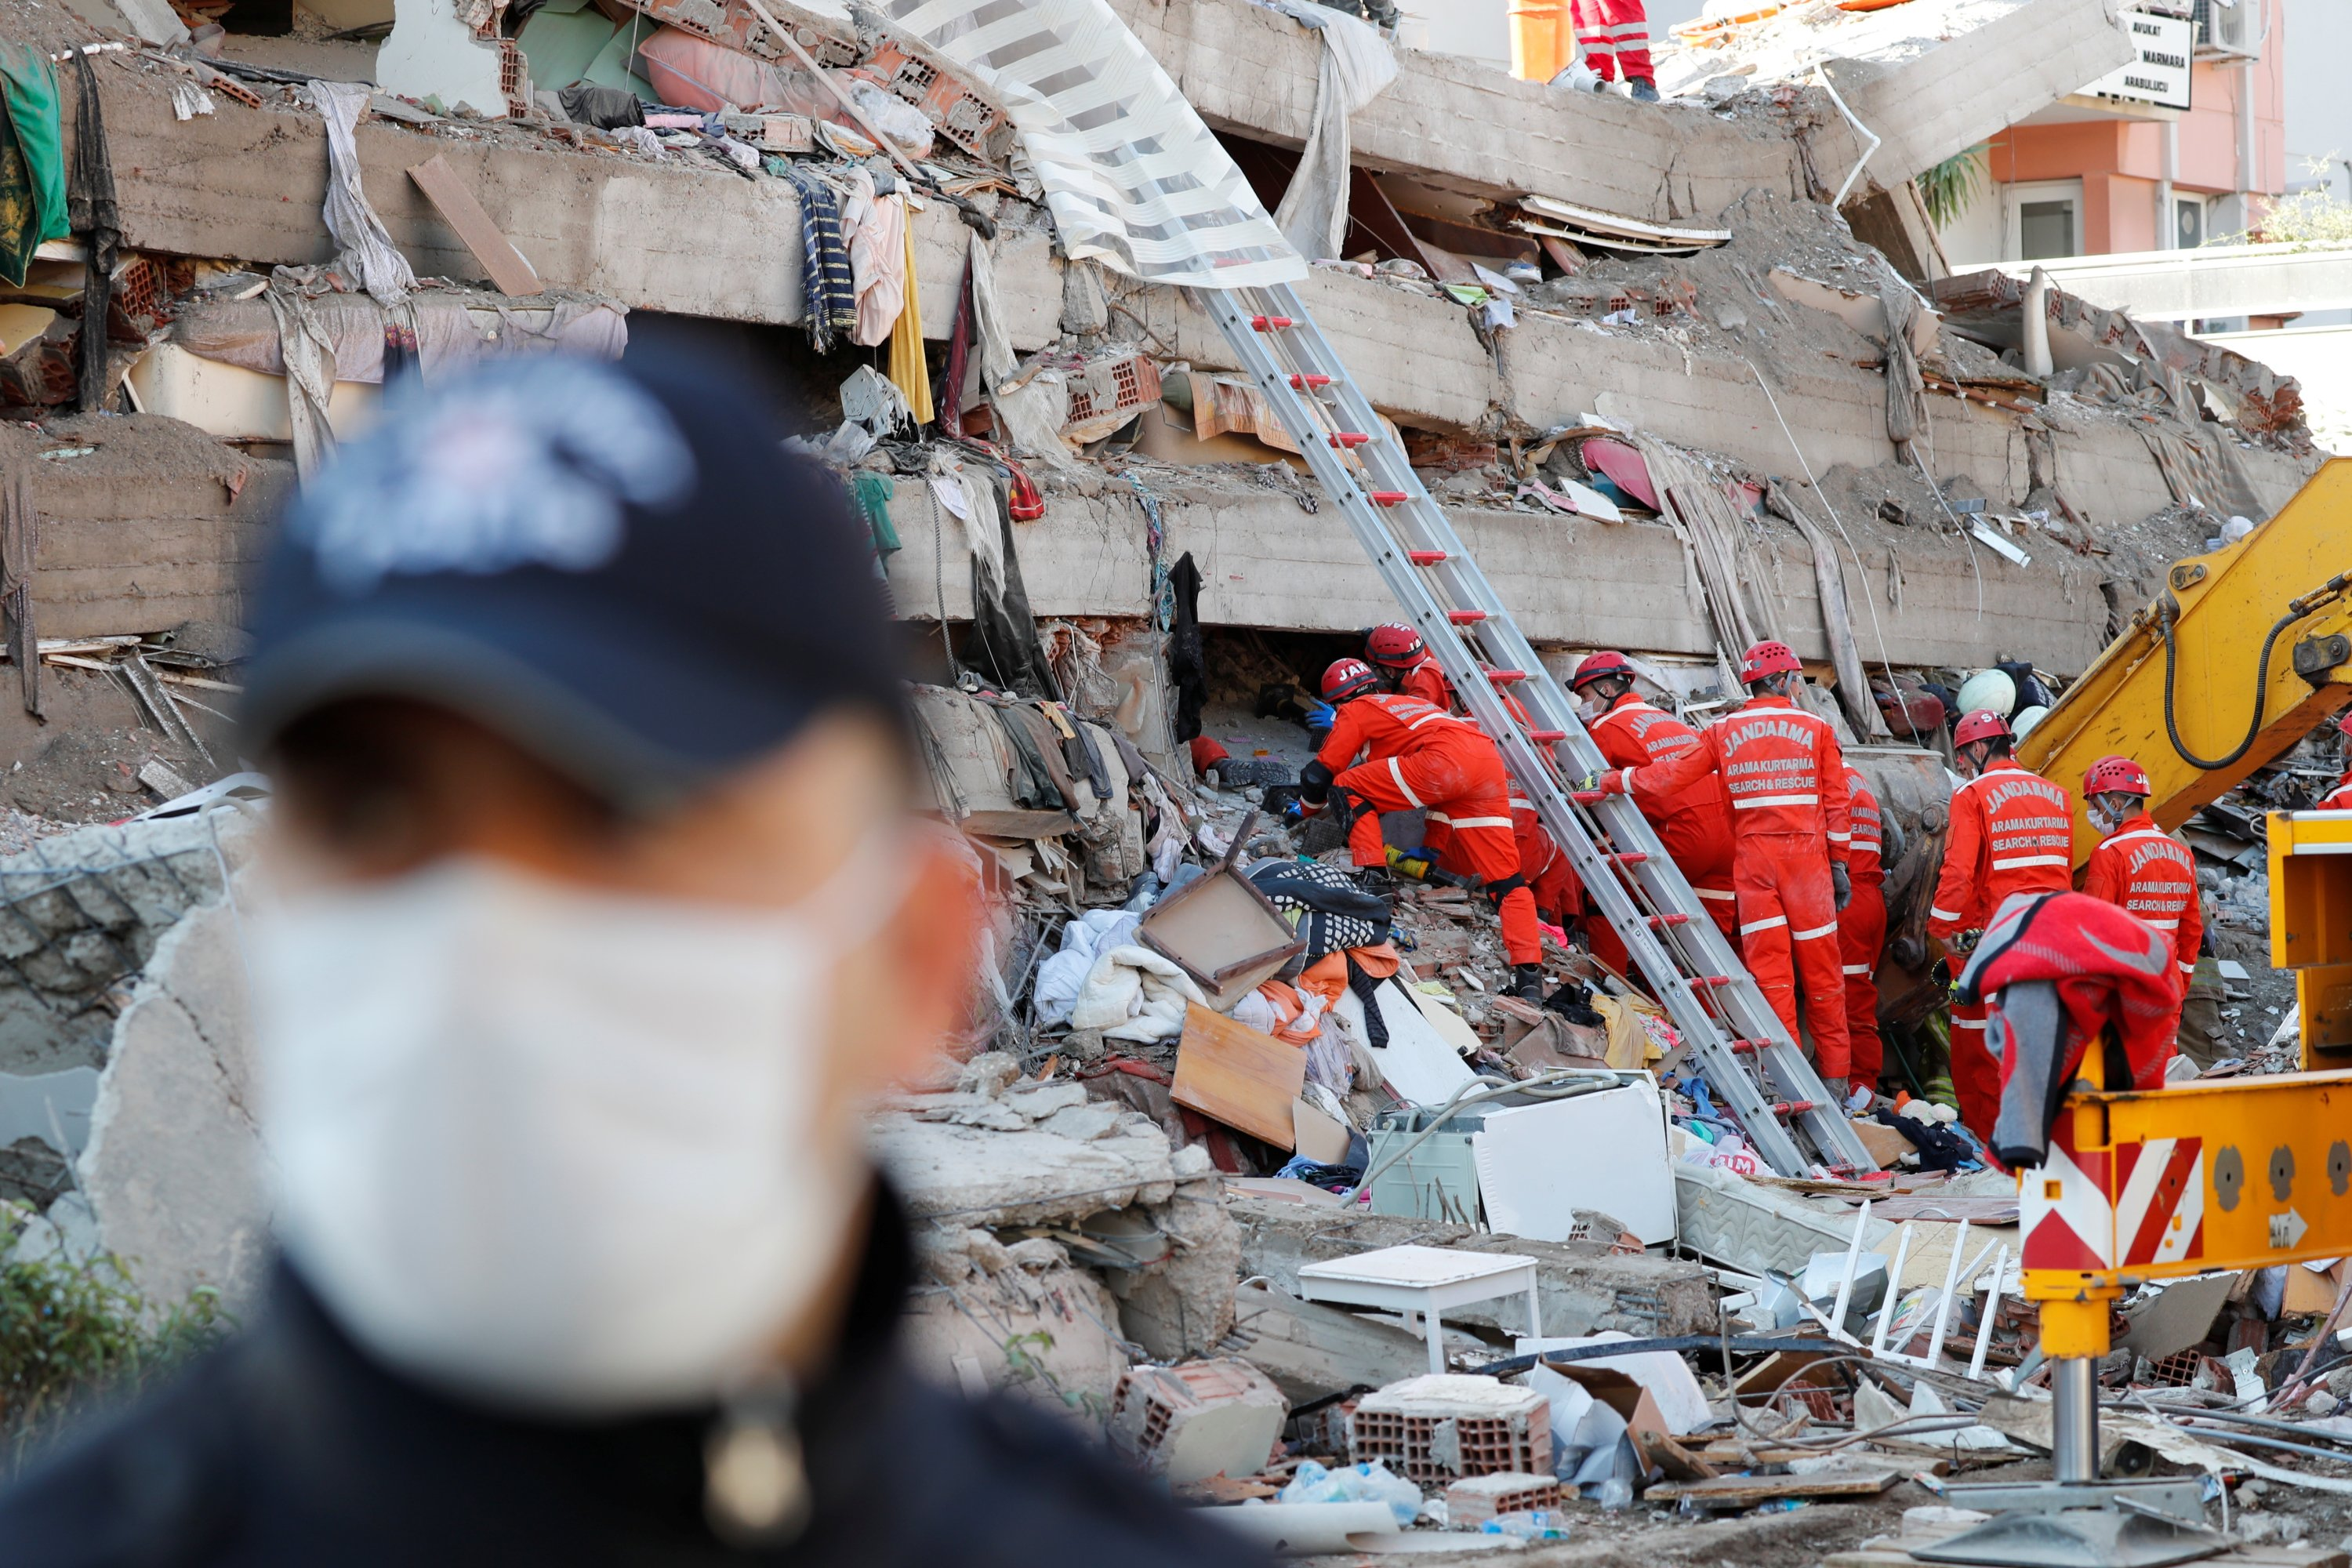 A police officer stands as rescue teams continue search efforts among the rubble, in Izmir, Turkey, Oct. 31, 2020. (Reuters Photo)